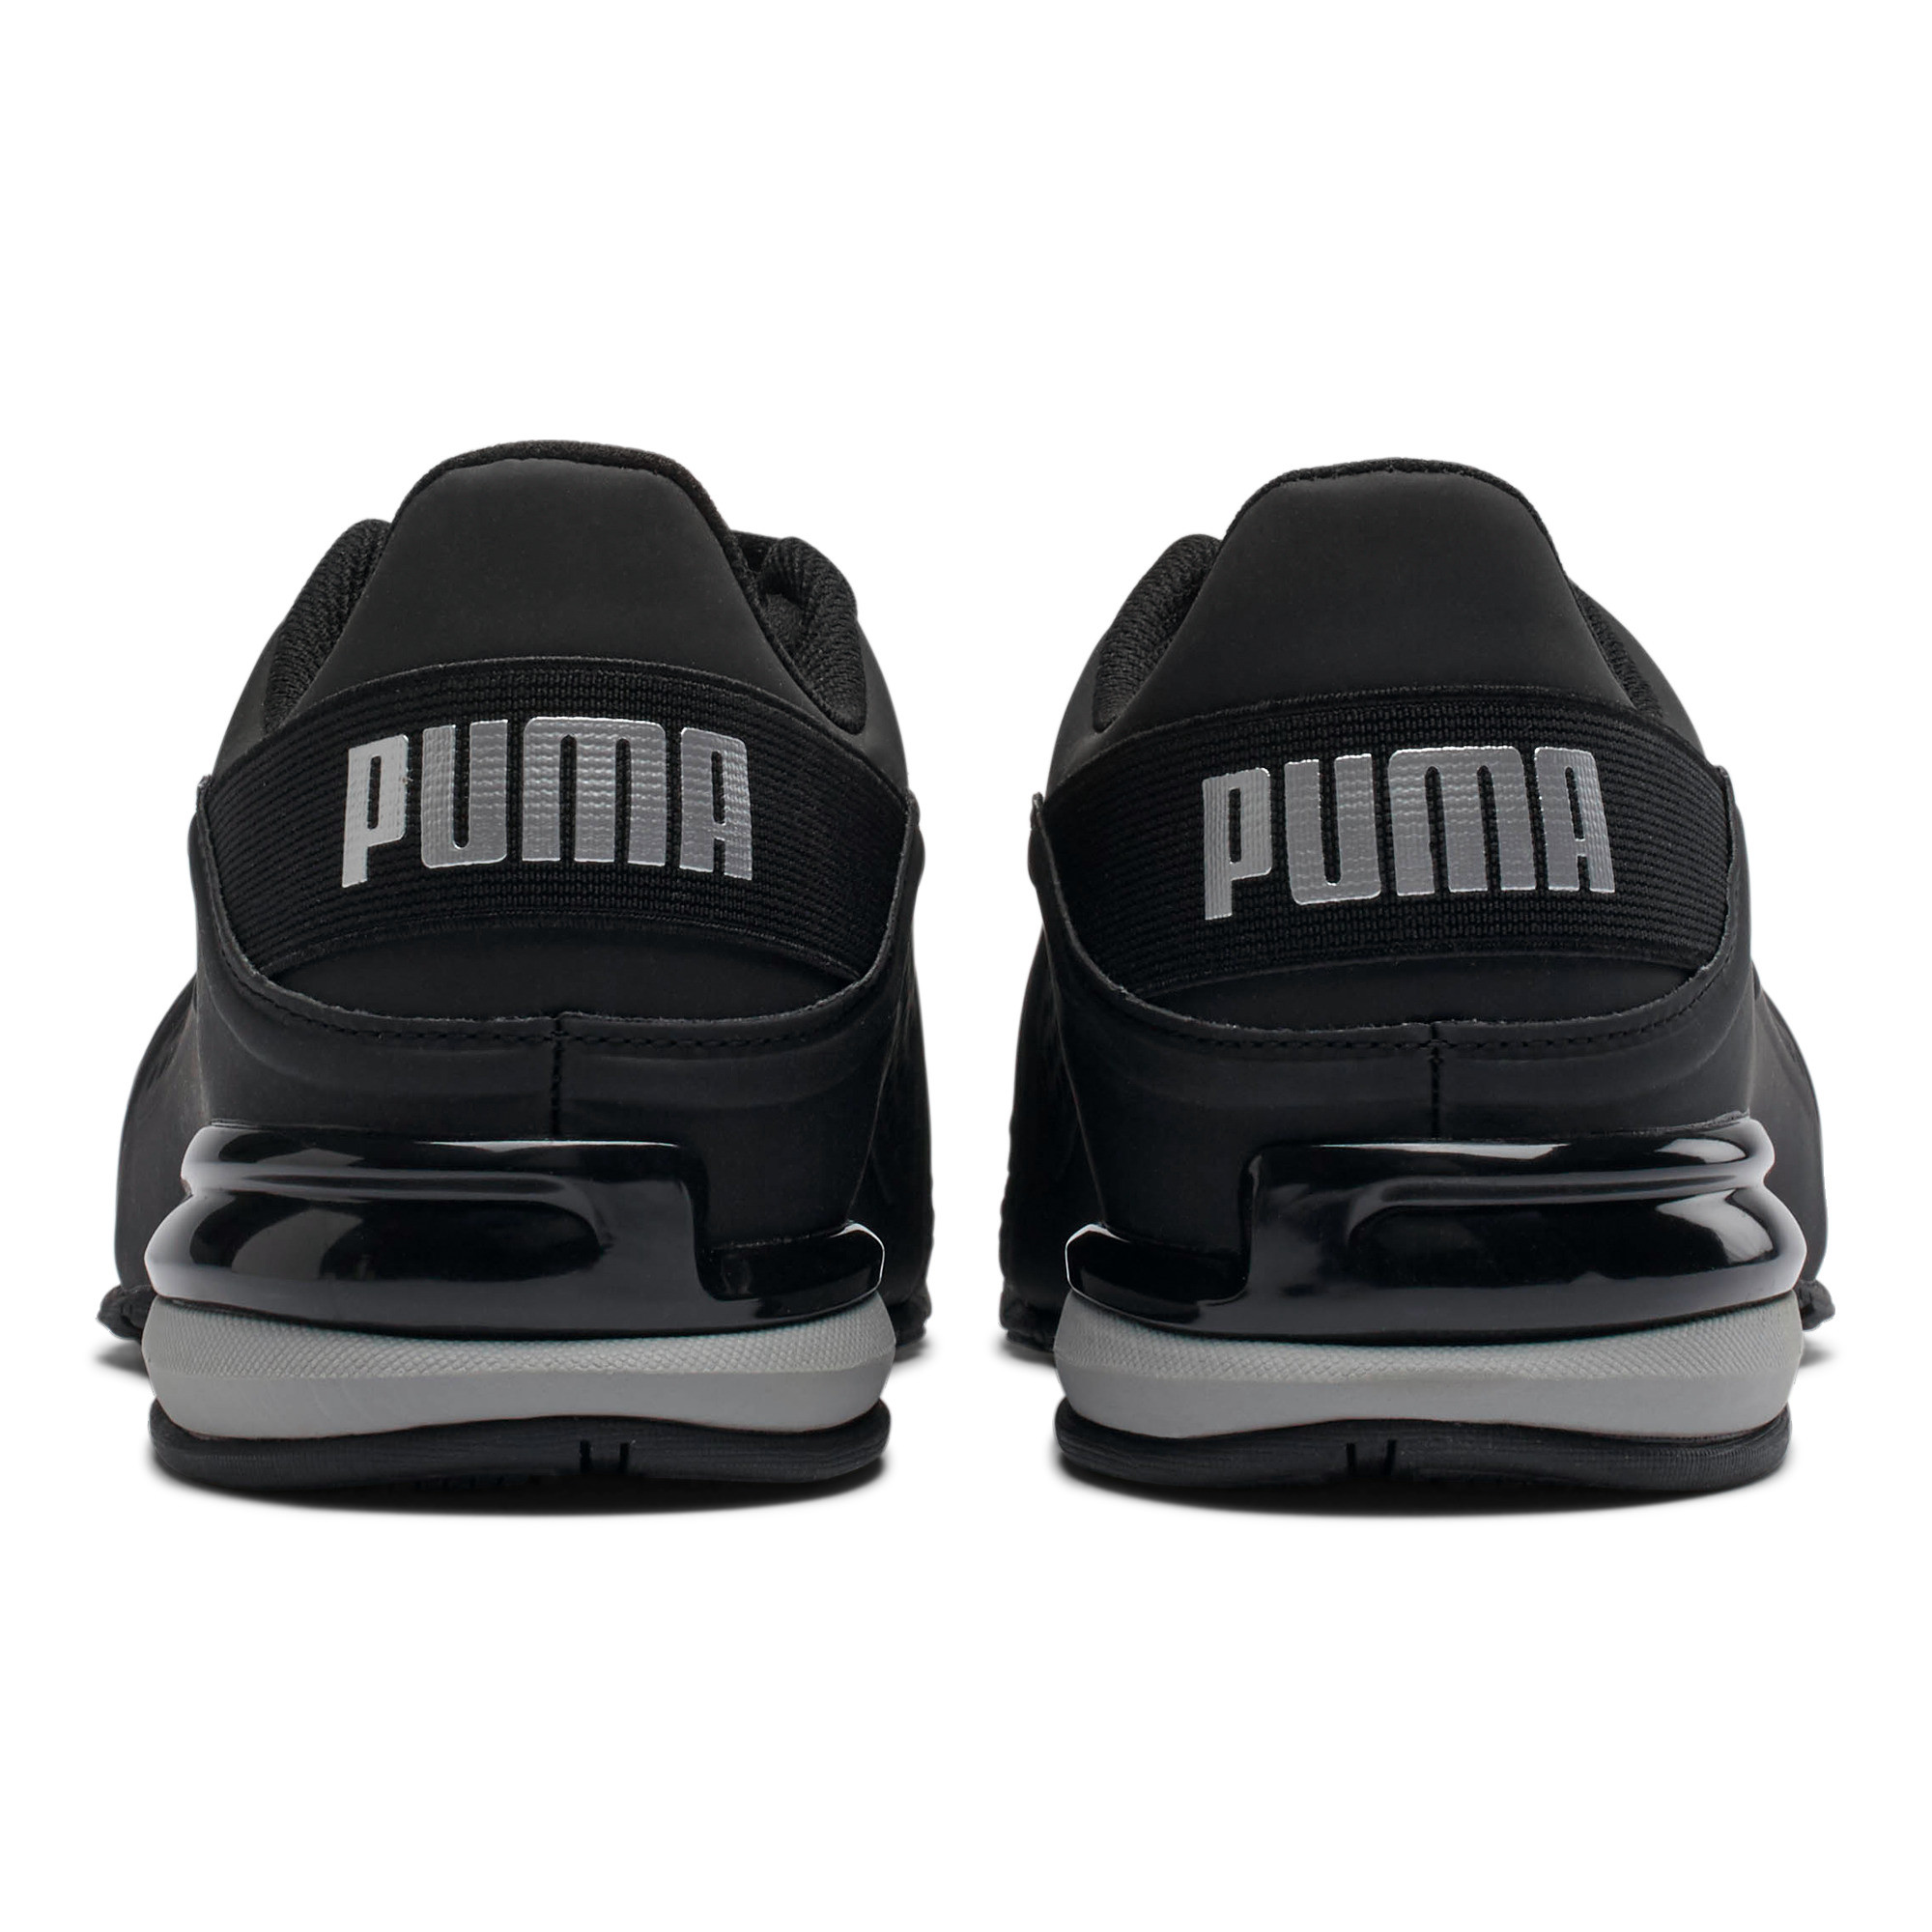 PUMA-Viz-Runner-Men-s-Running-Shoes-Men-Shoe-Running thumbnail 18